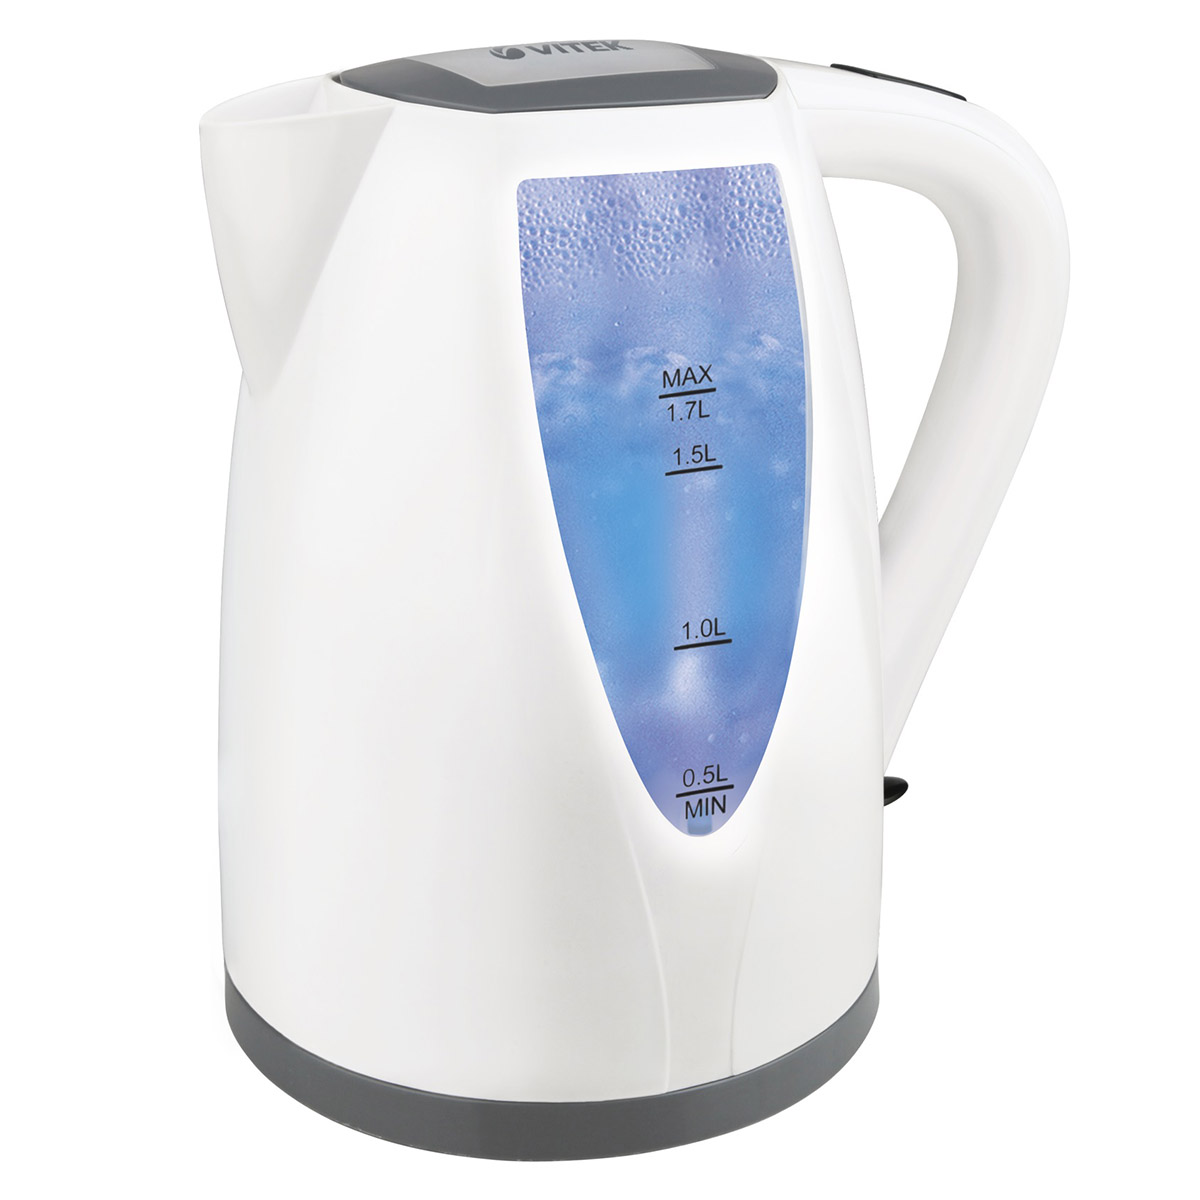 Electric kettle Vitek VT-7014 (W) (Power 2200 W, volume 1.7 liters, cord storage compartment, 360 ° rotation, auto power off) electric water kettle haier hek 182 auto power off protection wired handheld instant heating electric kettle